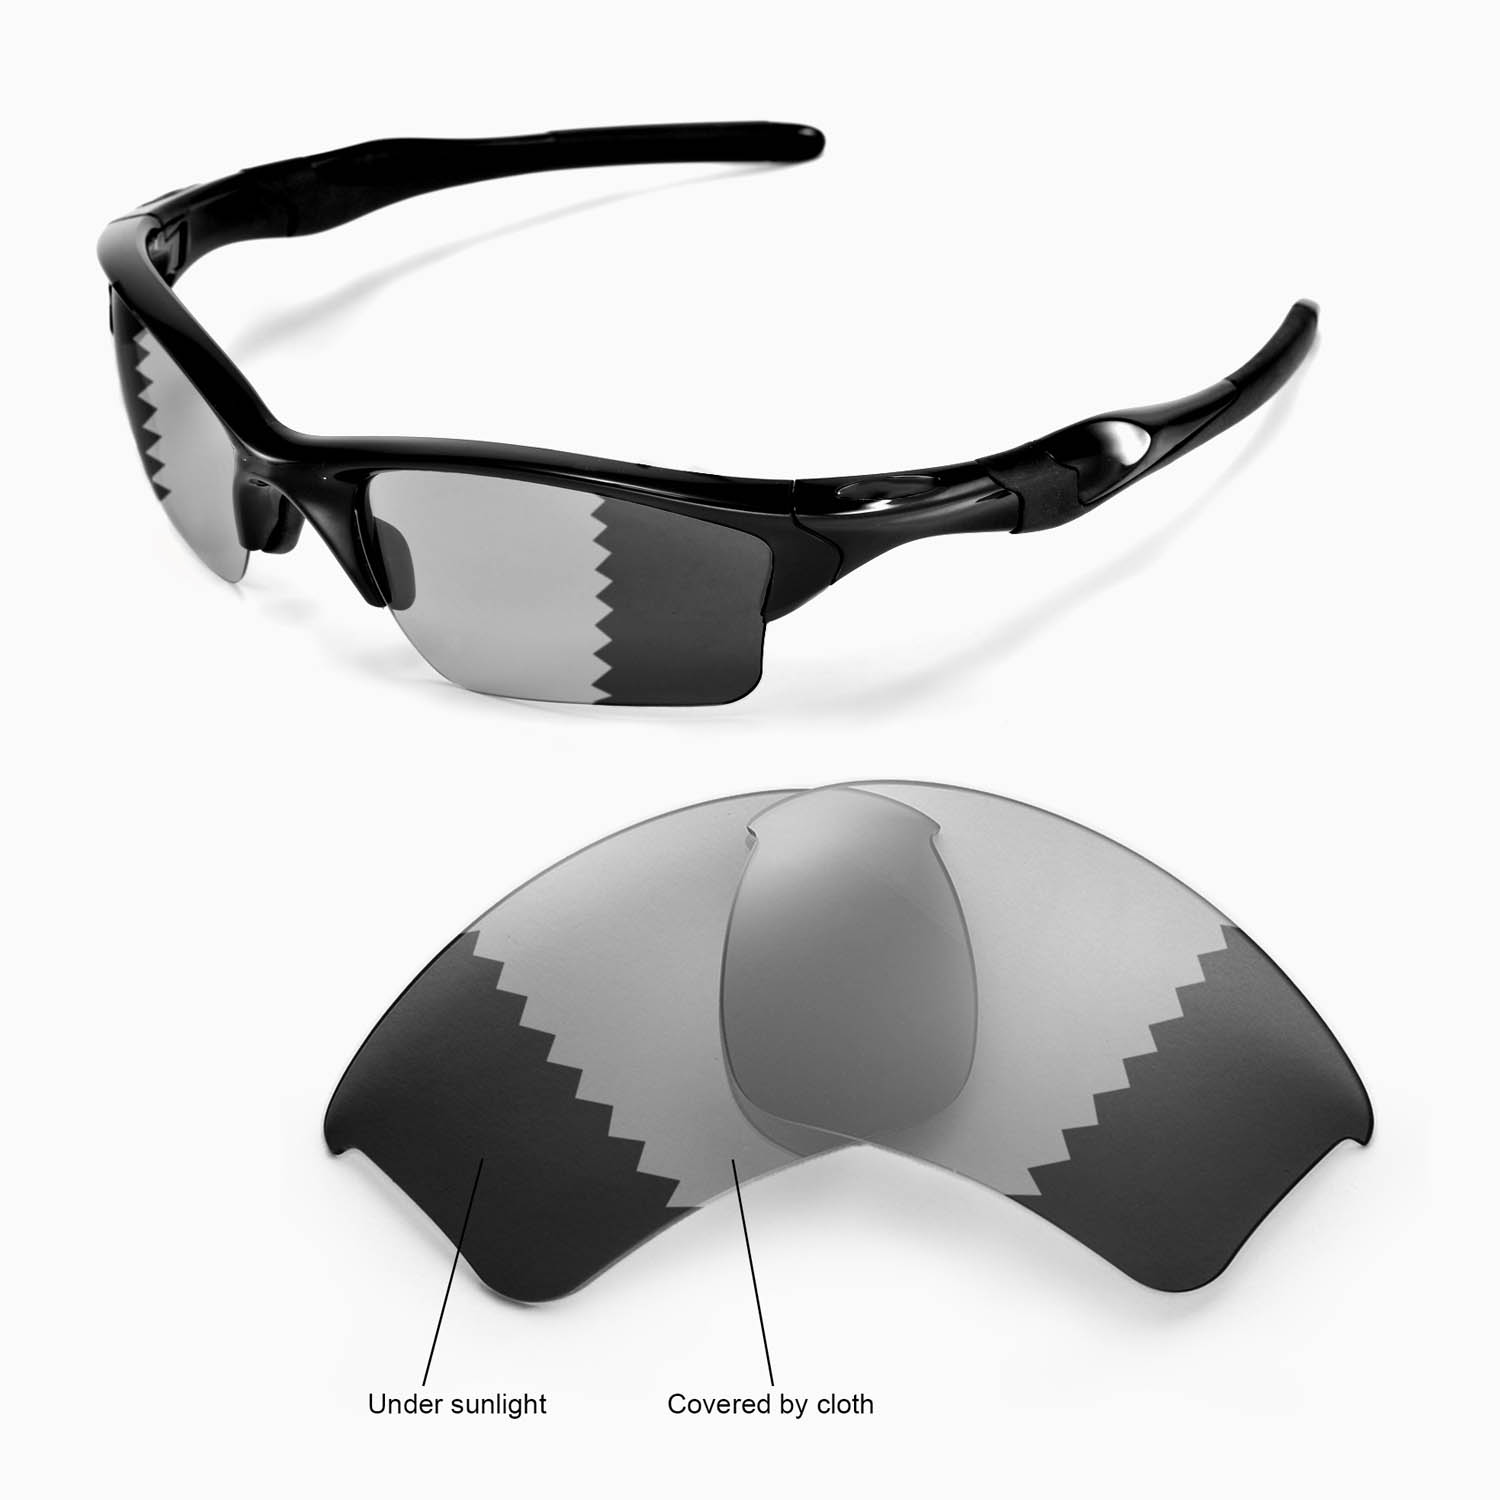 Half Jacket 2 0 >> Details About New Wl Polarized Transition Photochromic Lenses For Oakley Half Jacket 2 0 Xl